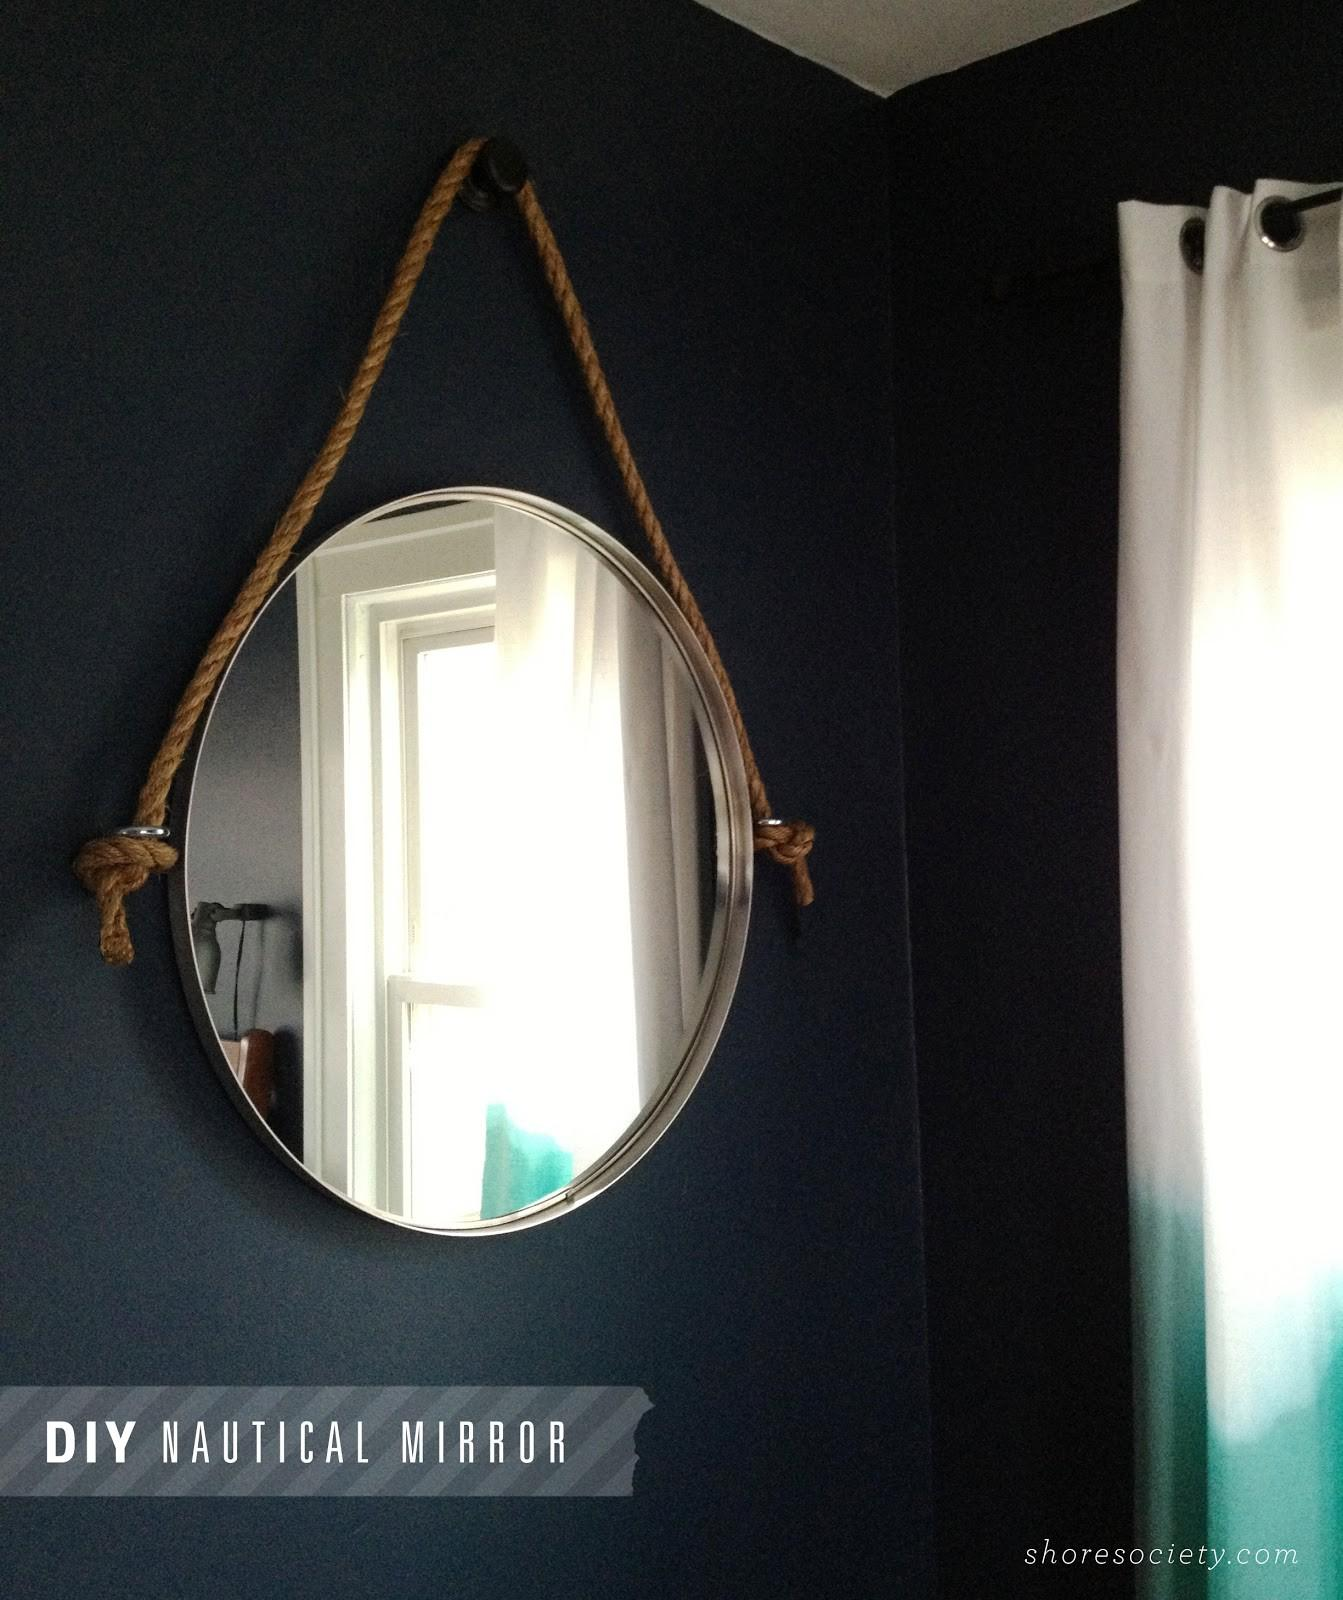 Shore Society Diy Nautical Rope Mirror